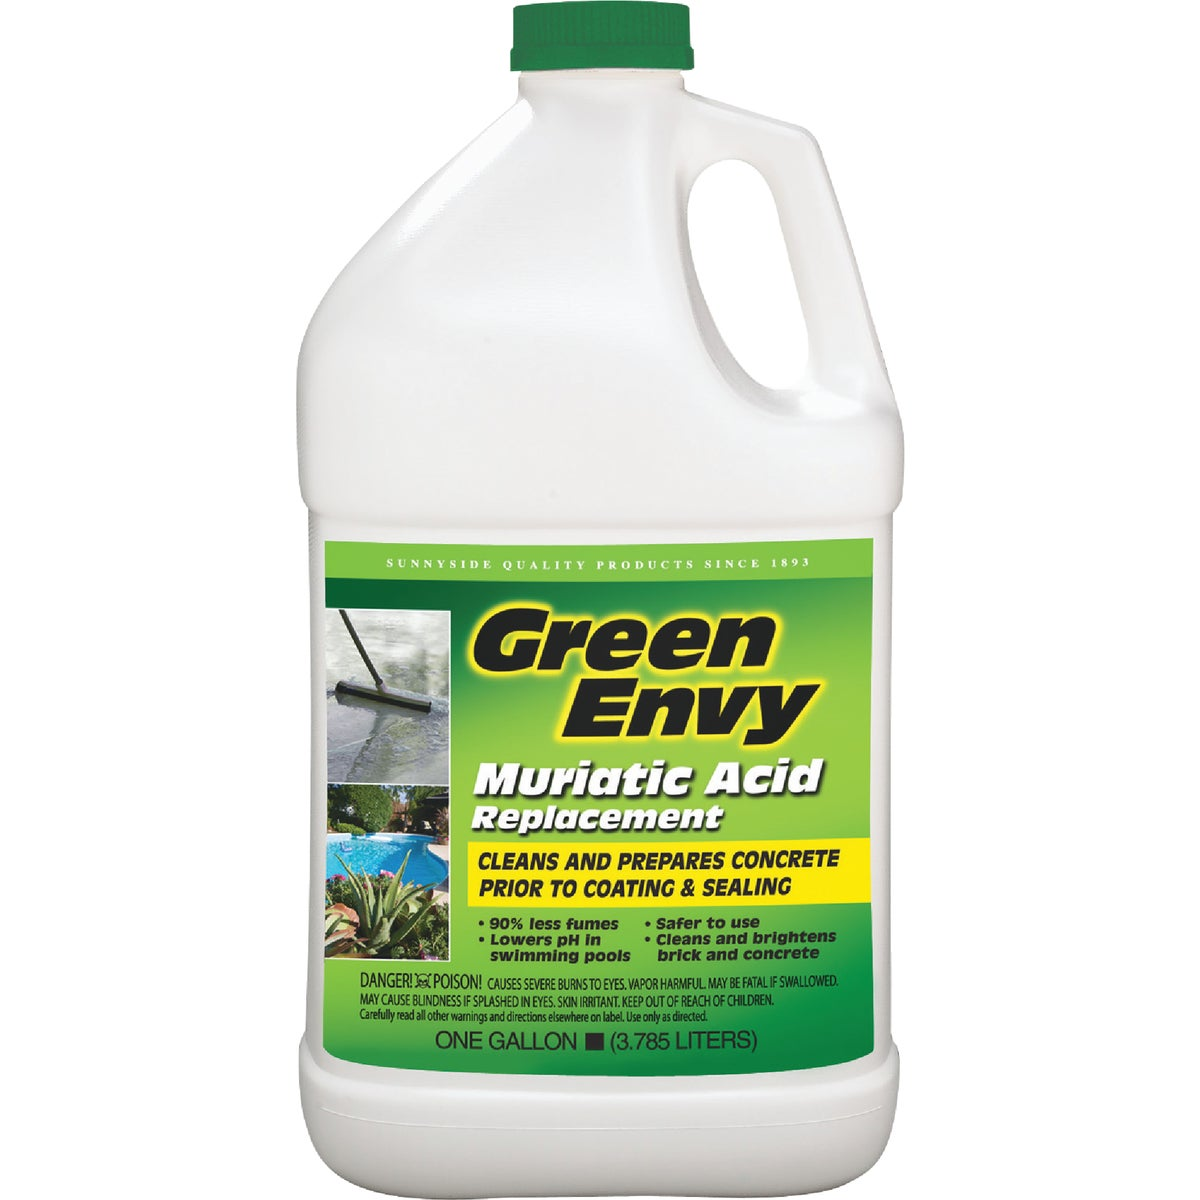 GREEN ENVY MURIATIC ACID - 610G1 by Sunnyside Corp